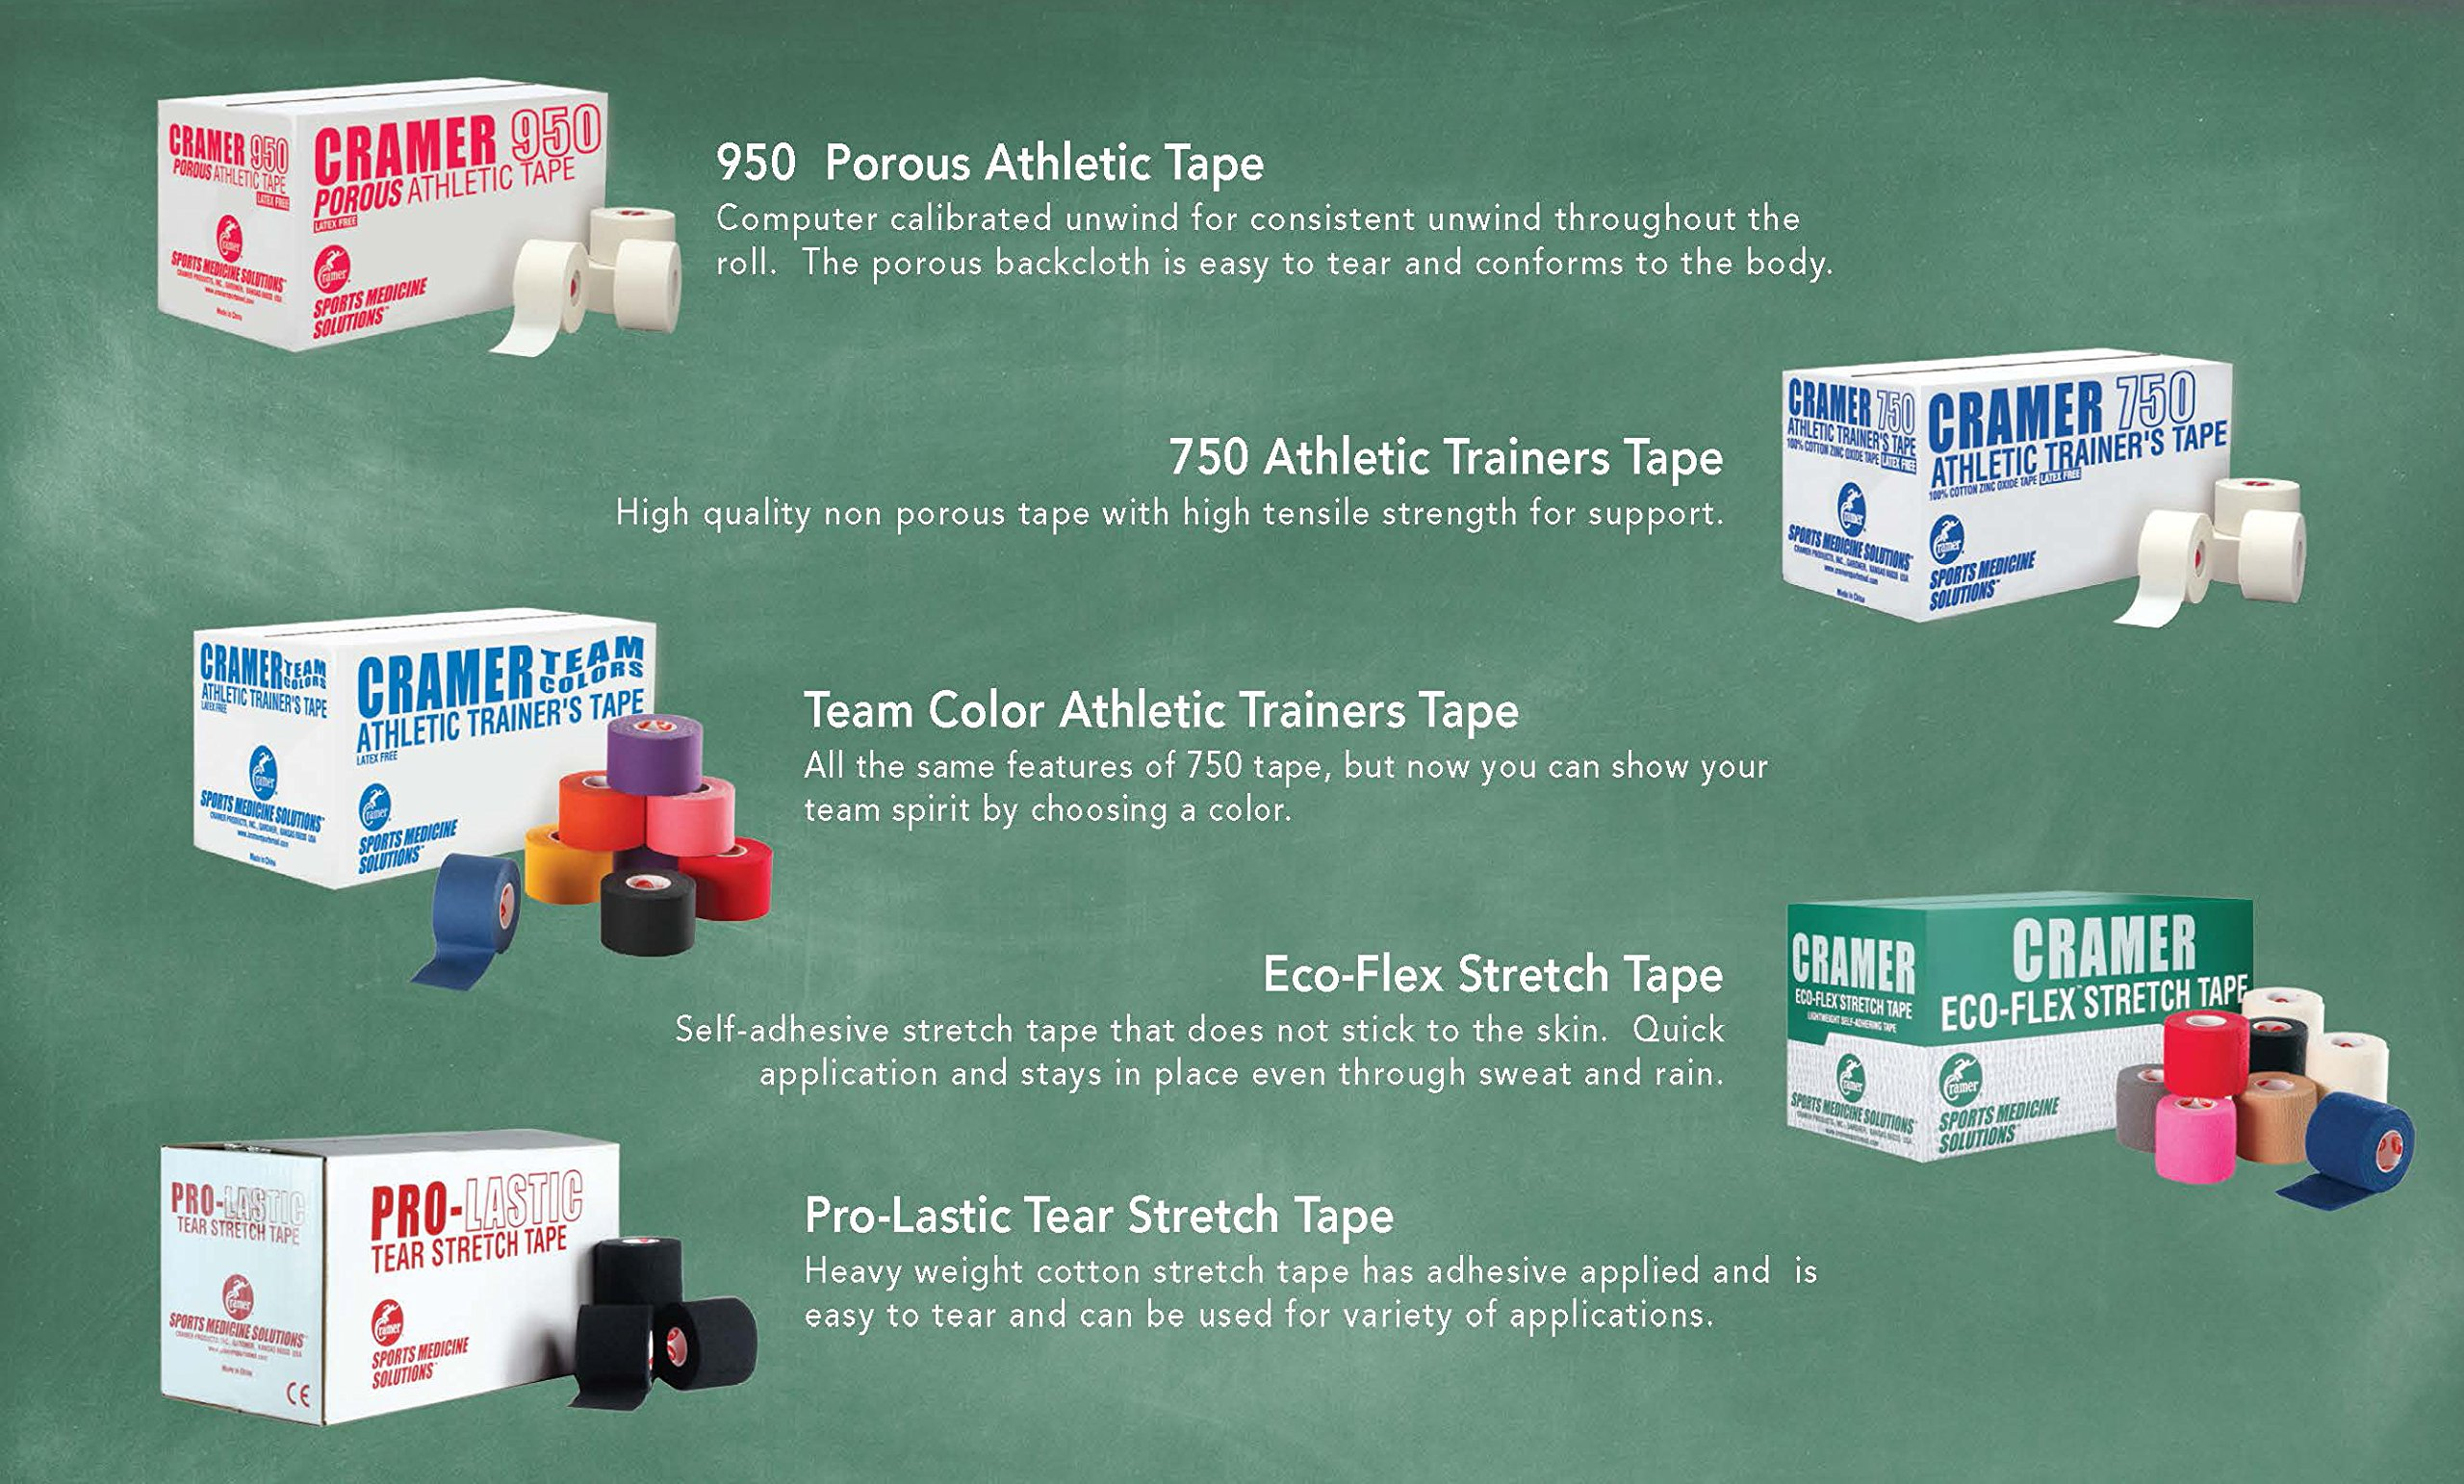 Cramer Pro-Lastic Stretch Tape, Easy Tear Athletic Tape, Flexible Elastic Tape with Premium Adhesive, Support for Wrist & Ankle Injury Taping, Athletic Training Supplies, Compression Wrap, Bulk Case